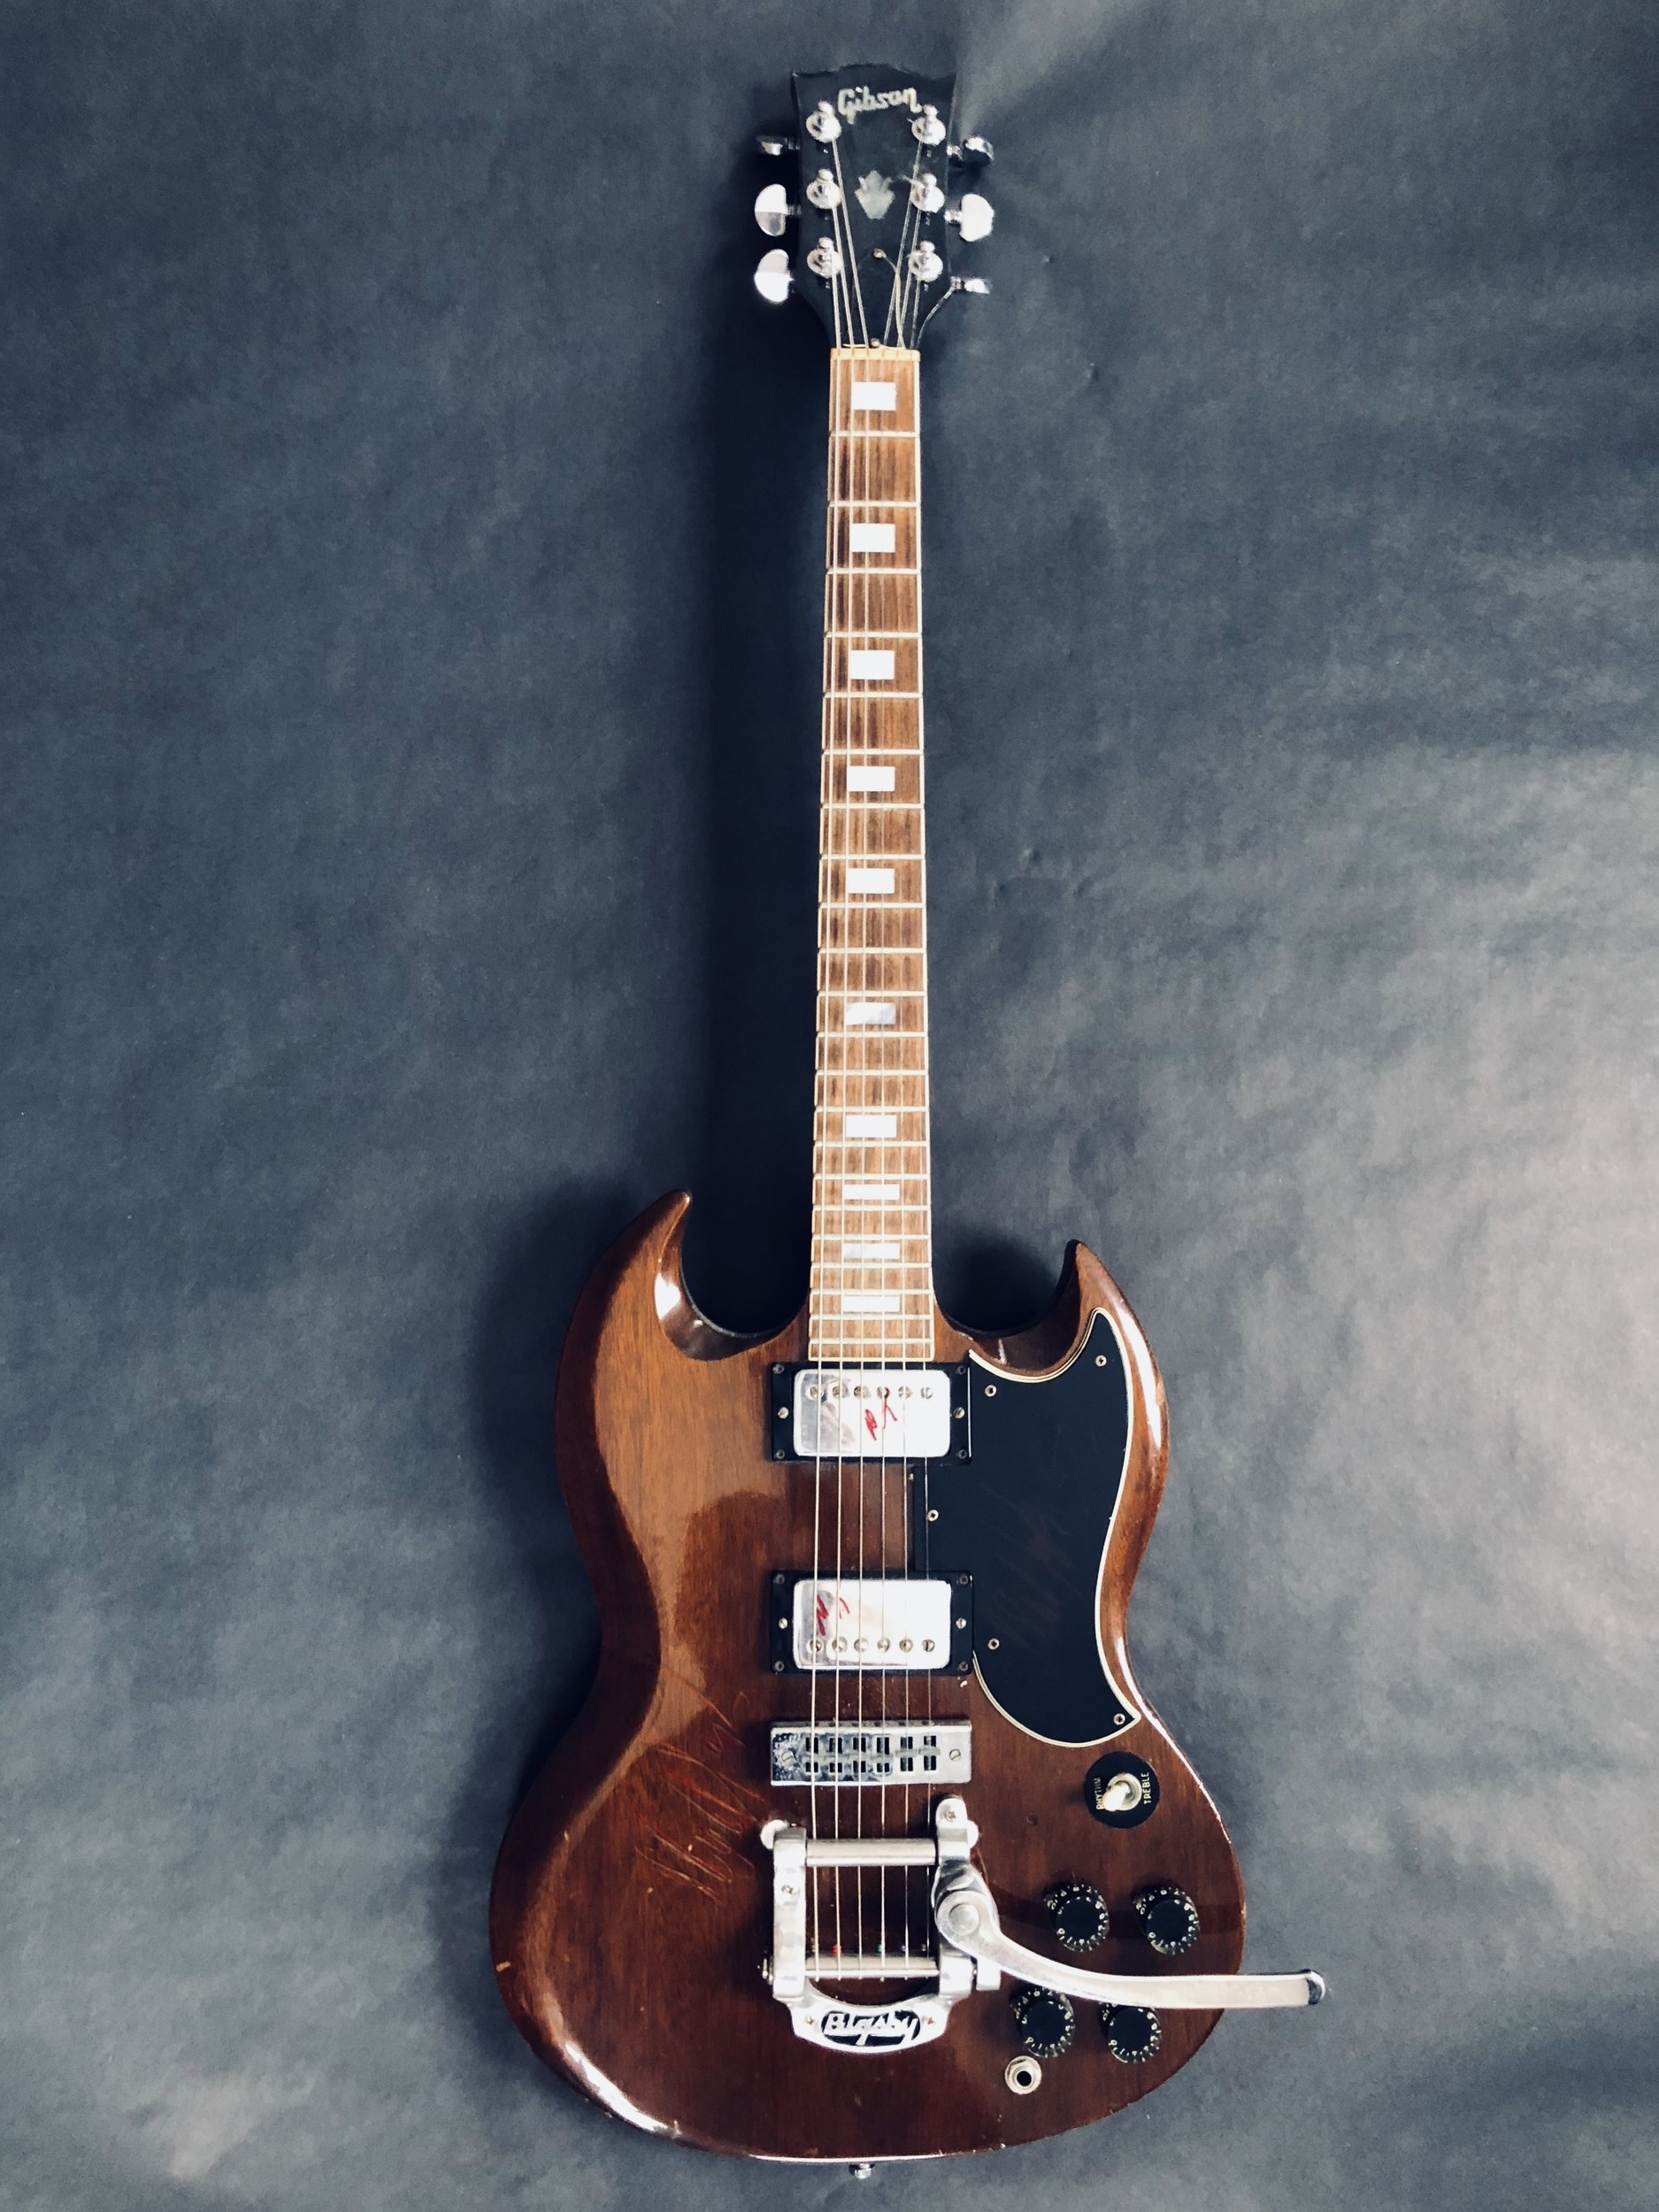 Gibson SG Standard (autographed by Mick Taylor)